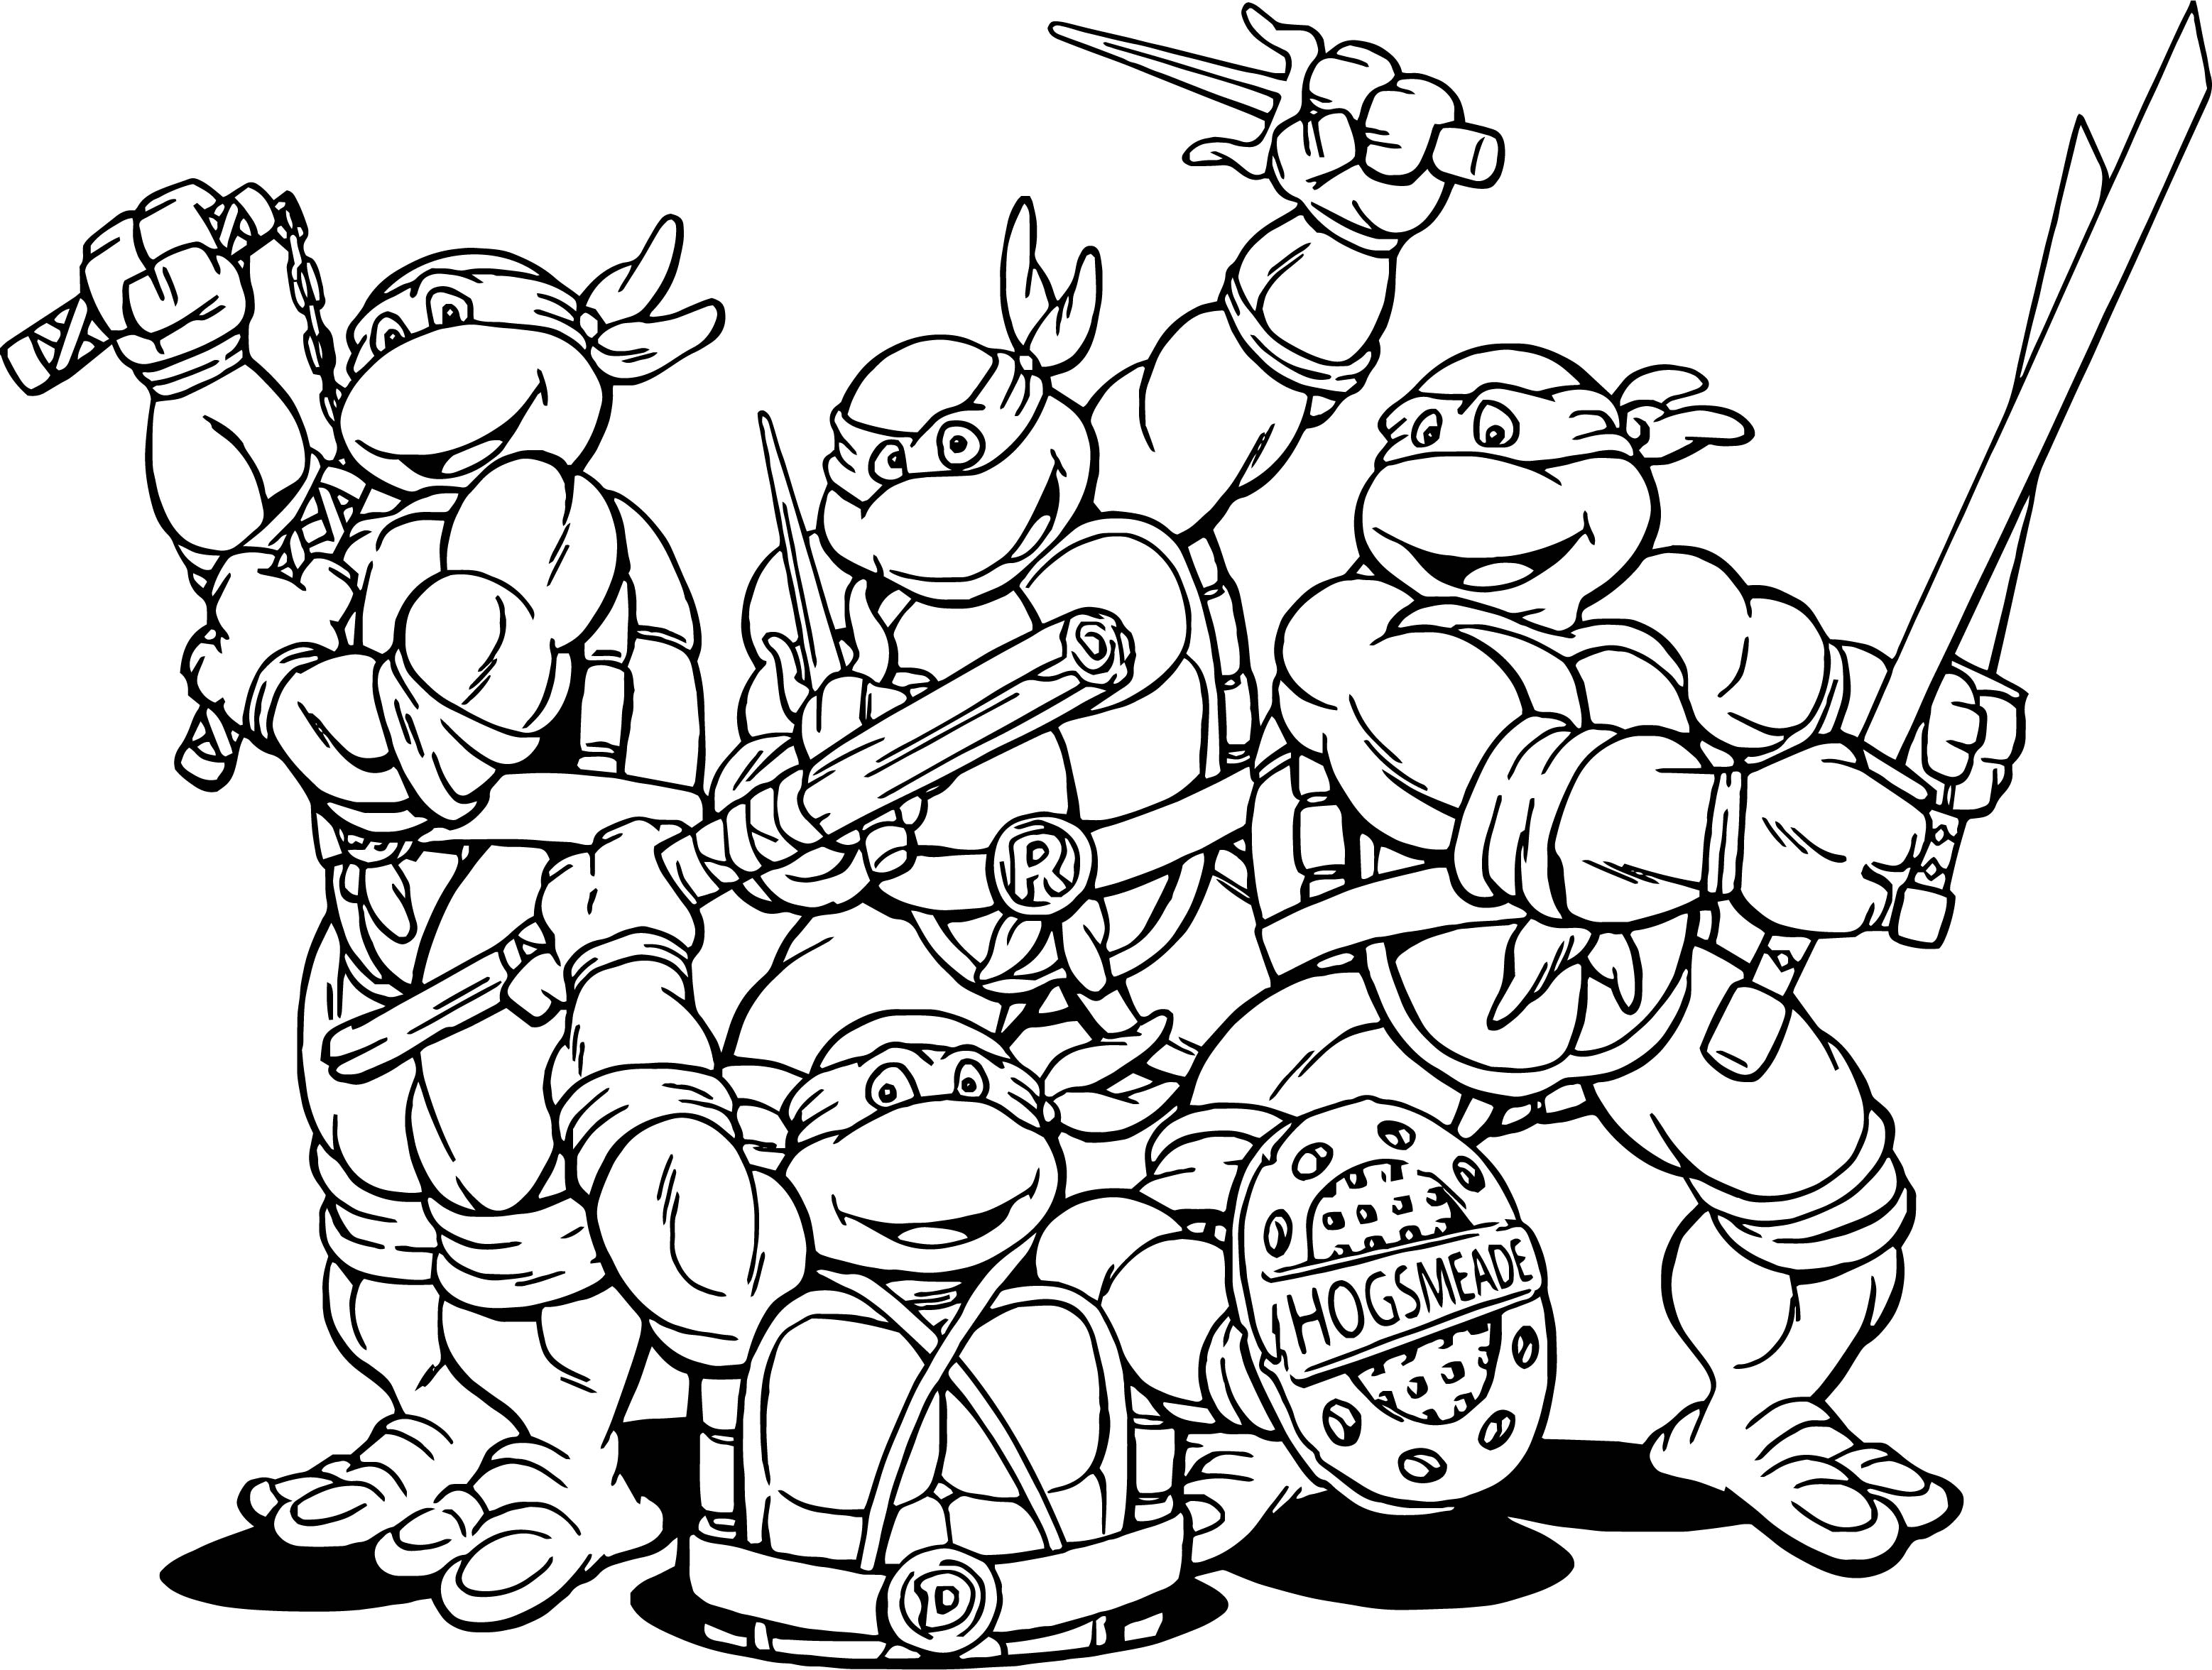 Teenage Mutant Ninja Turtles Cartoon Coloring Page